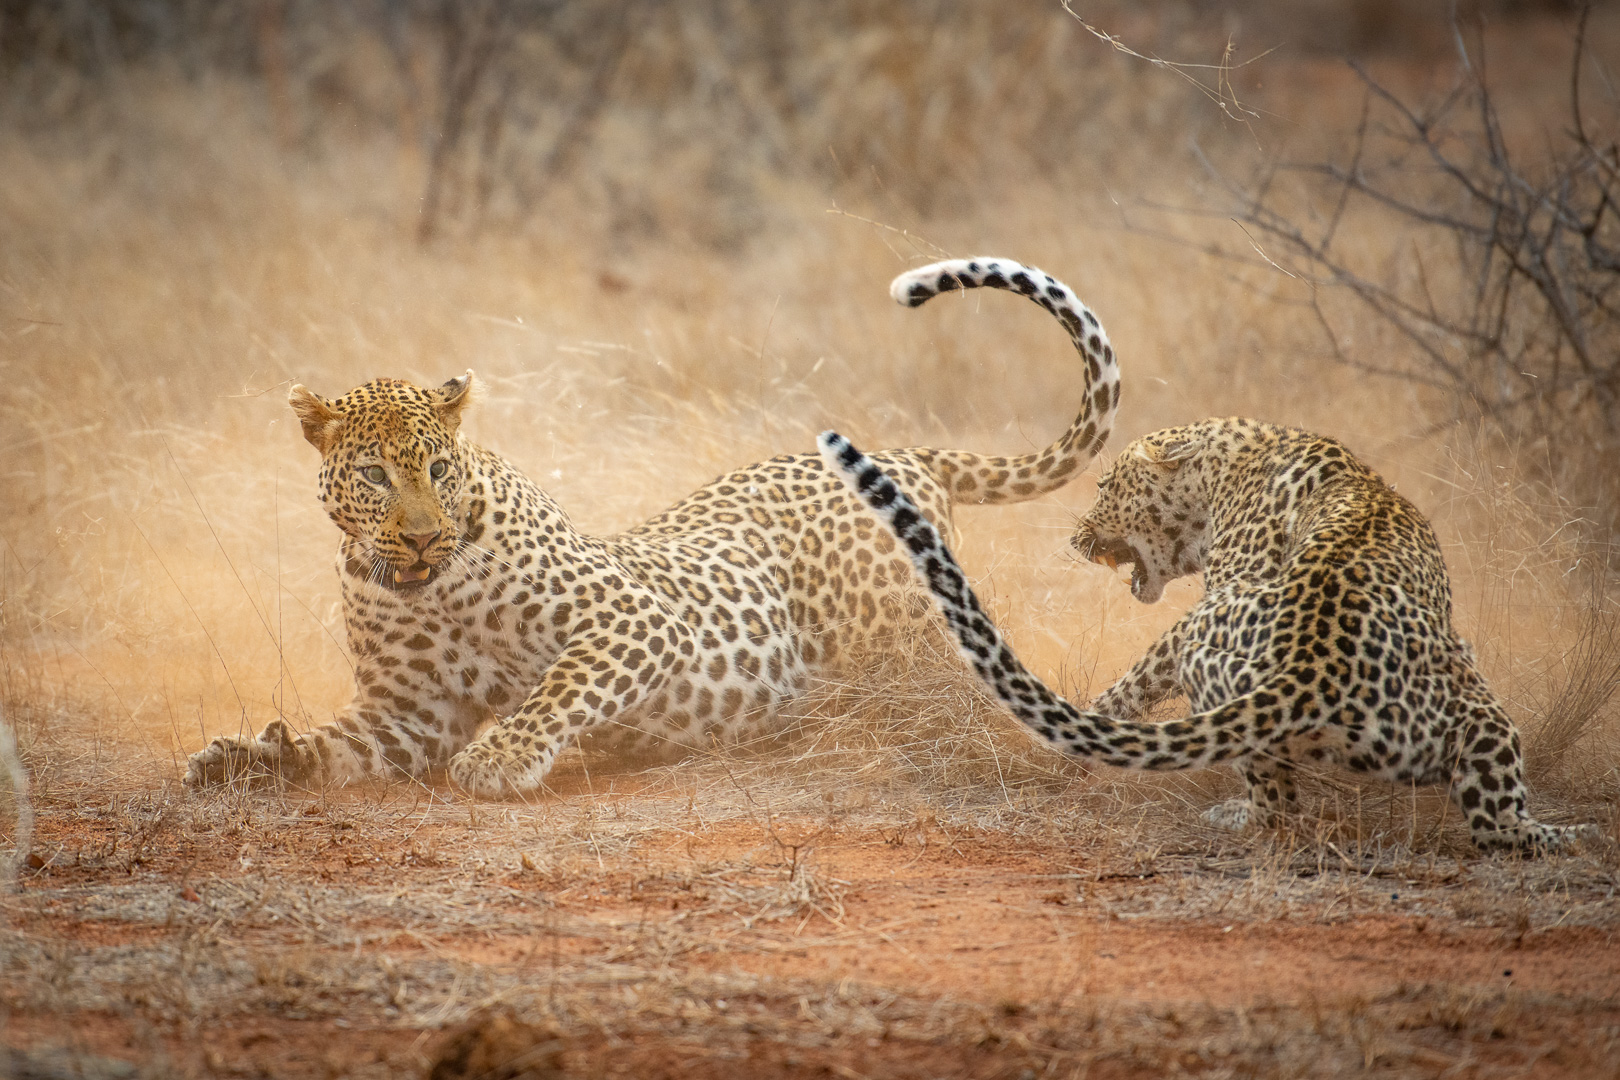 Tanda Tula - leopards fighting in the Greater Kruger